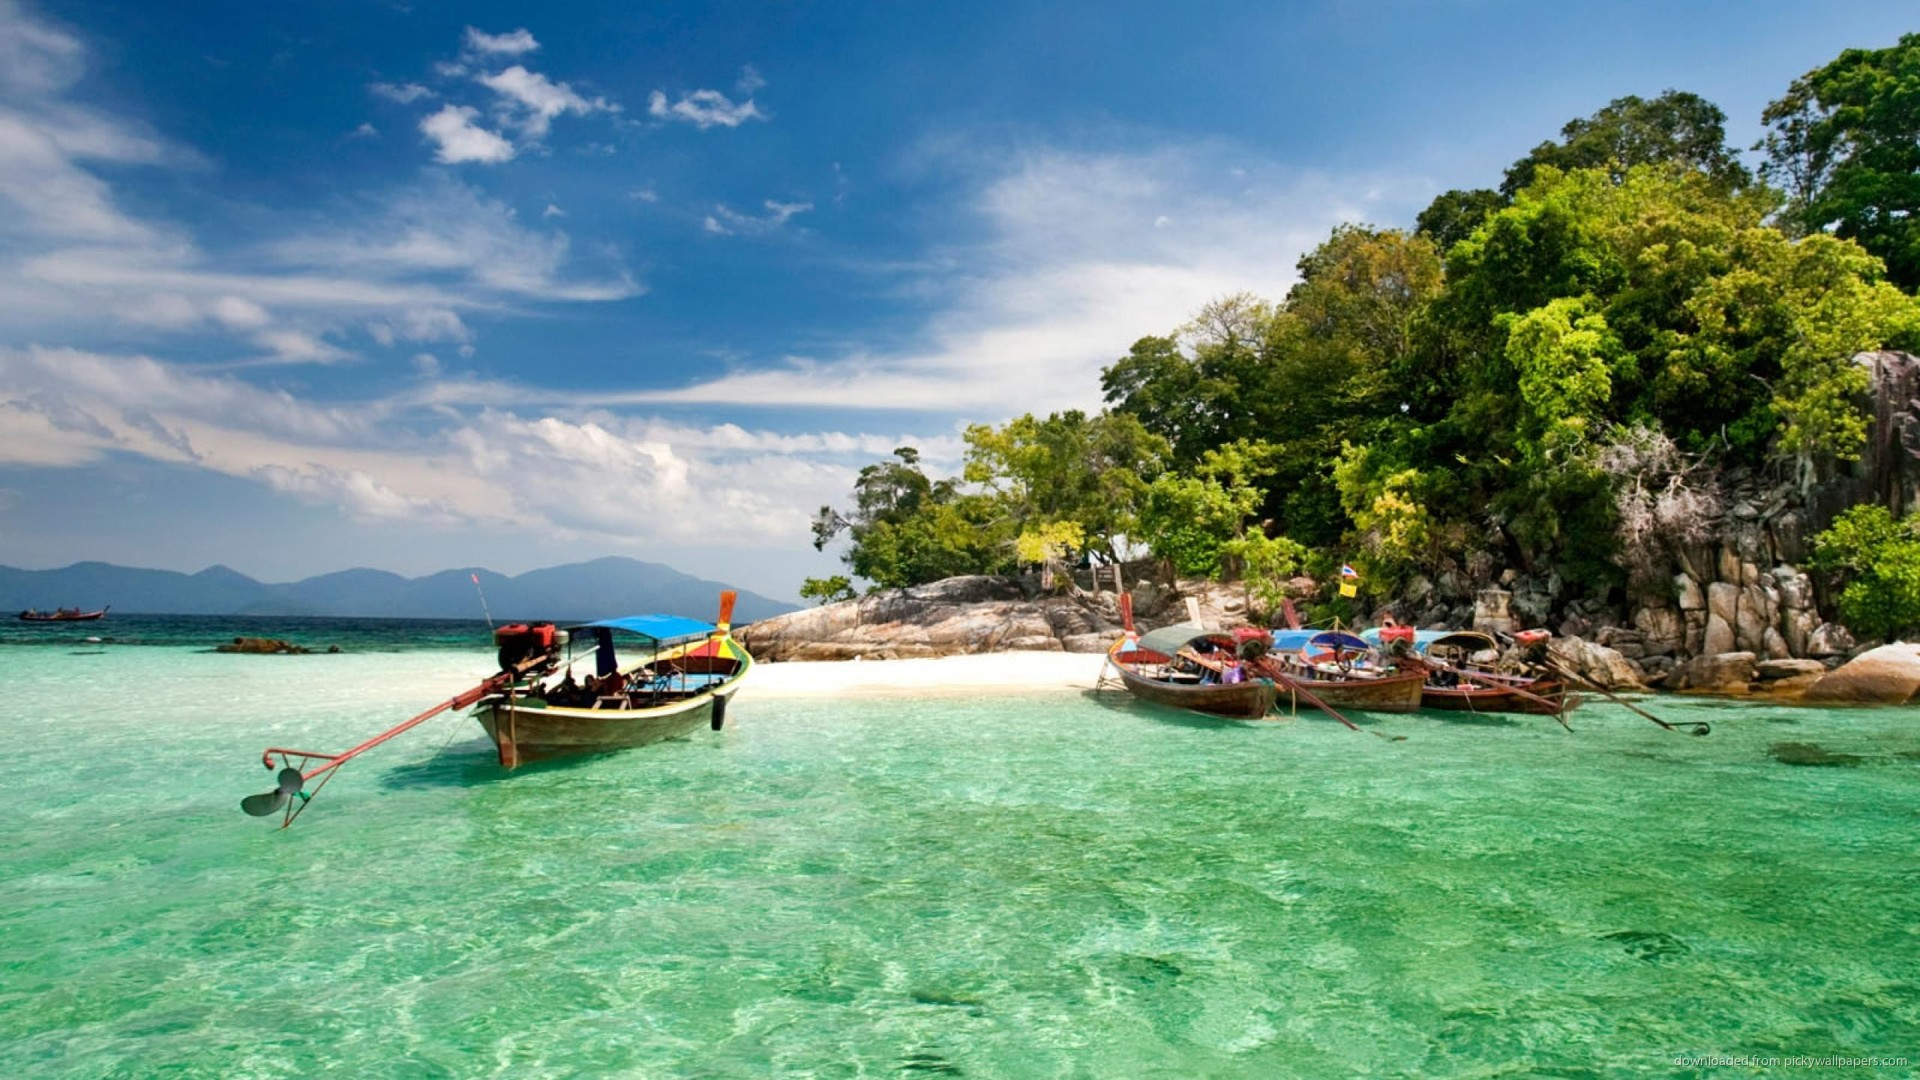 September 8 2015 By Stephen Comments Off on Thailand Beach Wallpaper 1920x1080